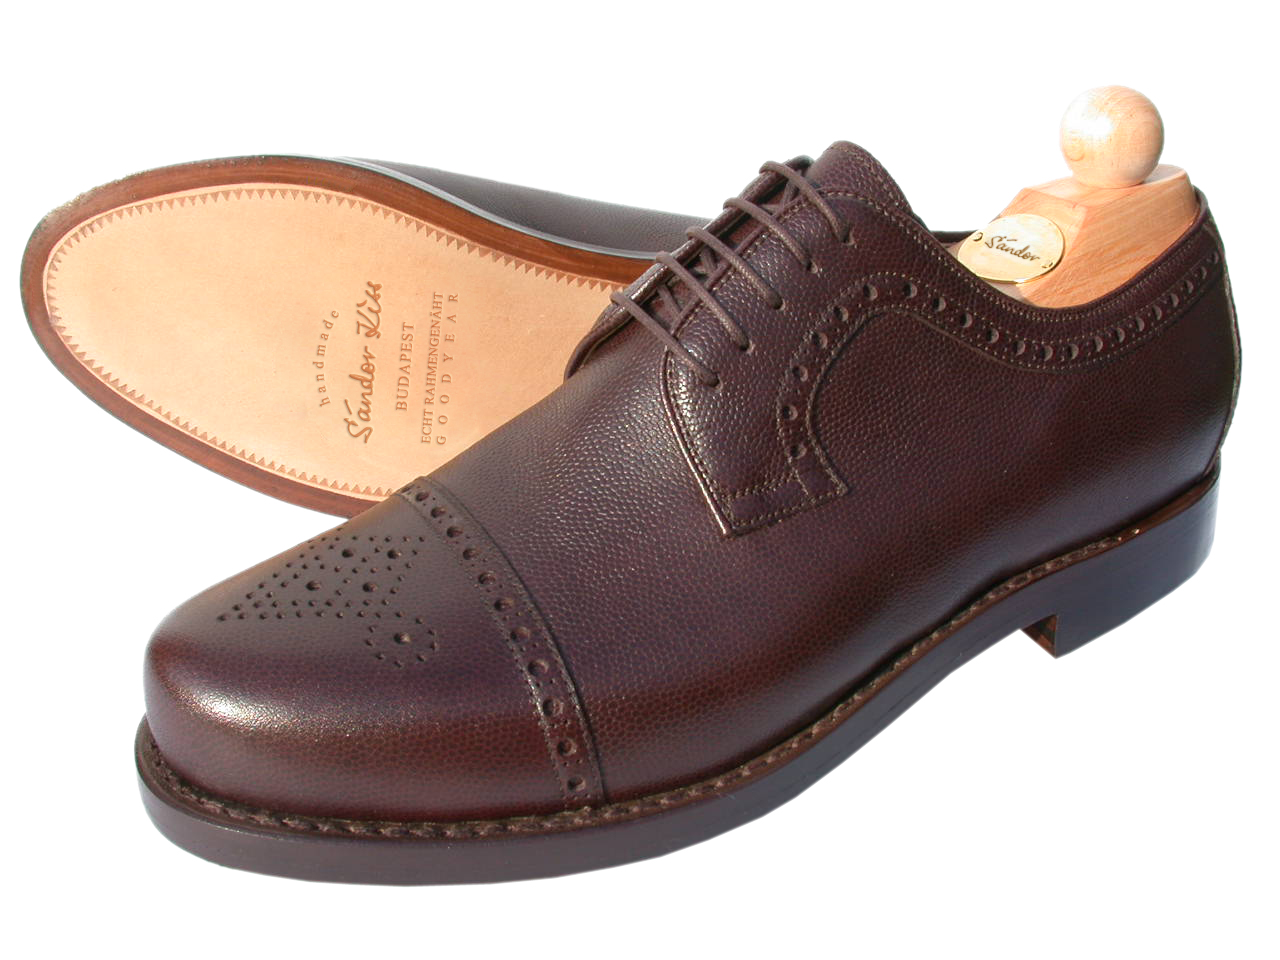 Semi-Brogue Scotch Grain schoko, sportlich